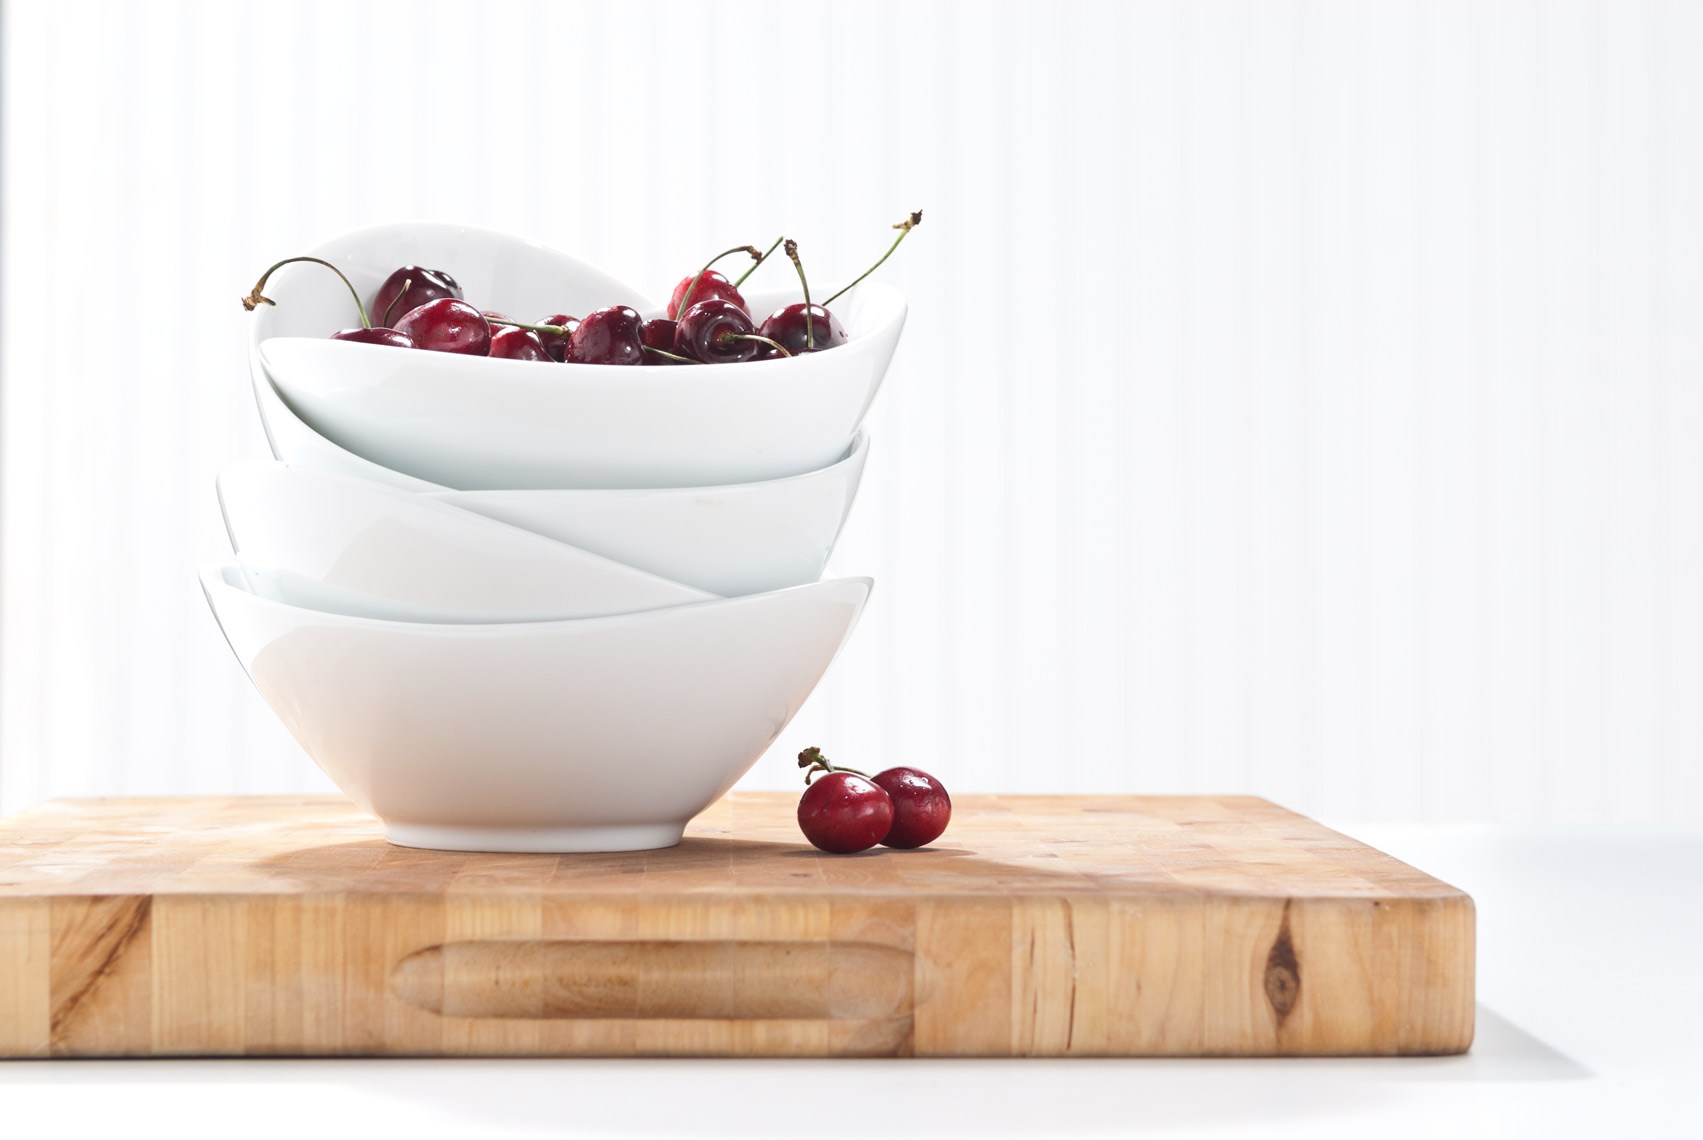 White_Bowls_On_Wood_With_Cherries